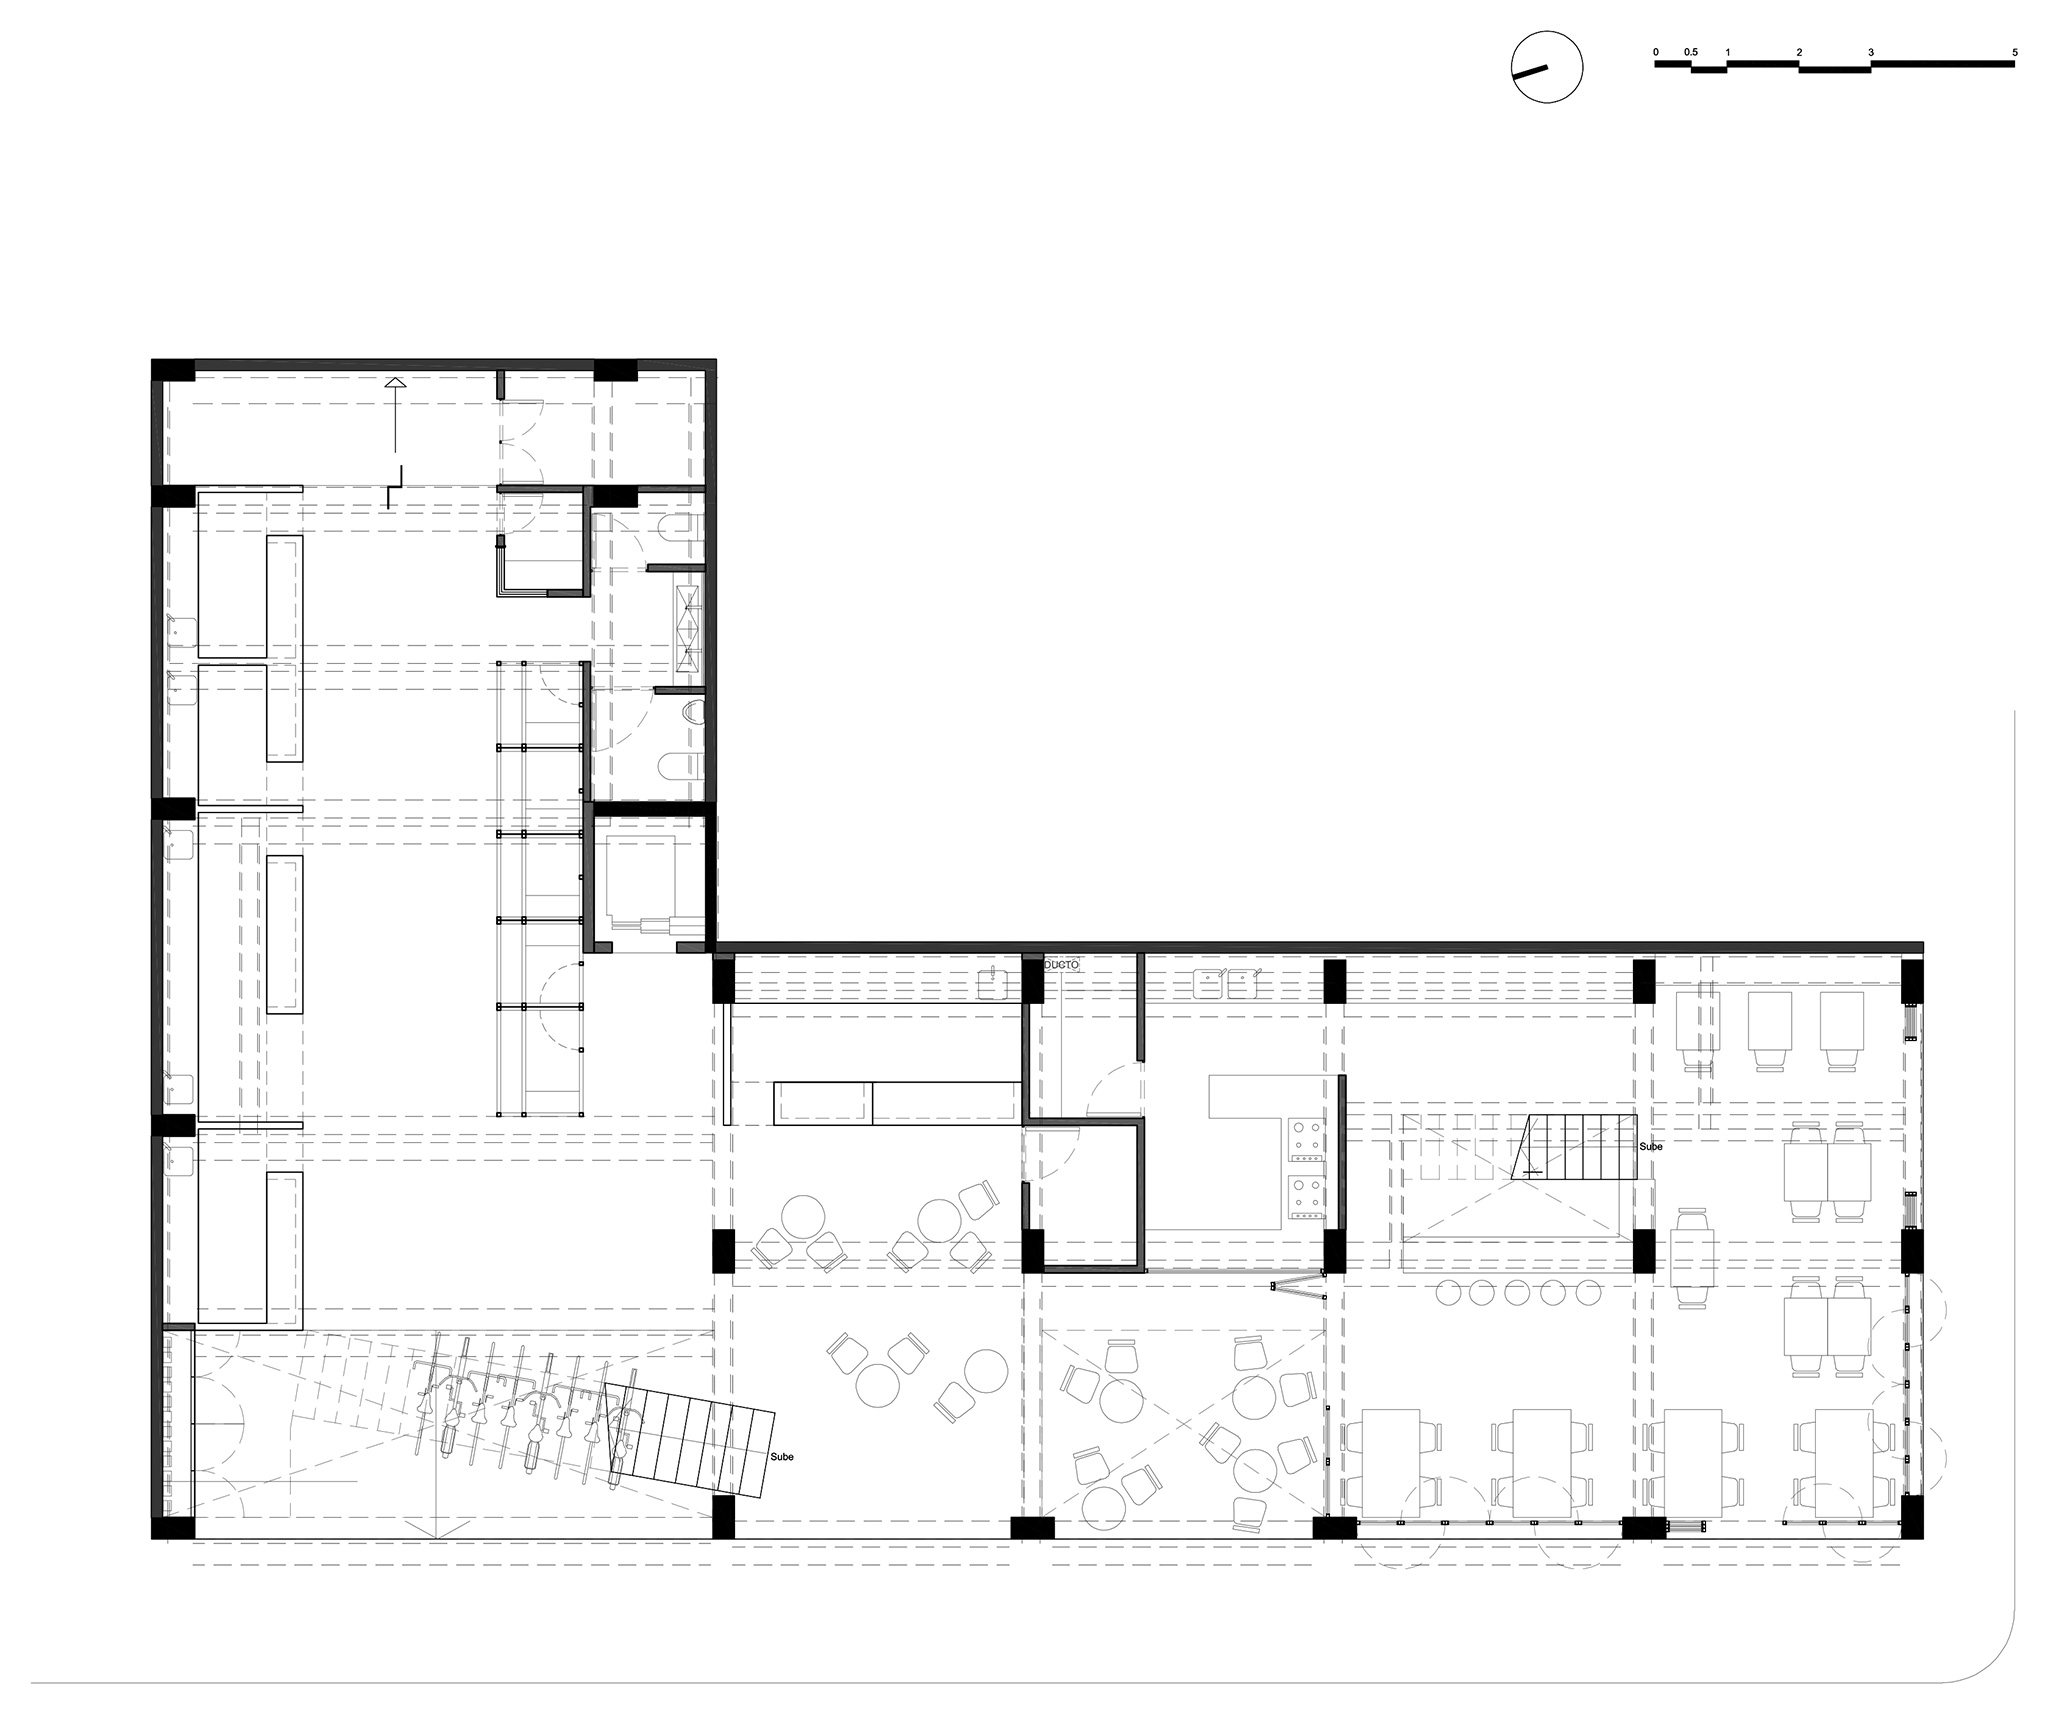 Milán 44 by Francisco Pardo Arquitecto. From warehouse to